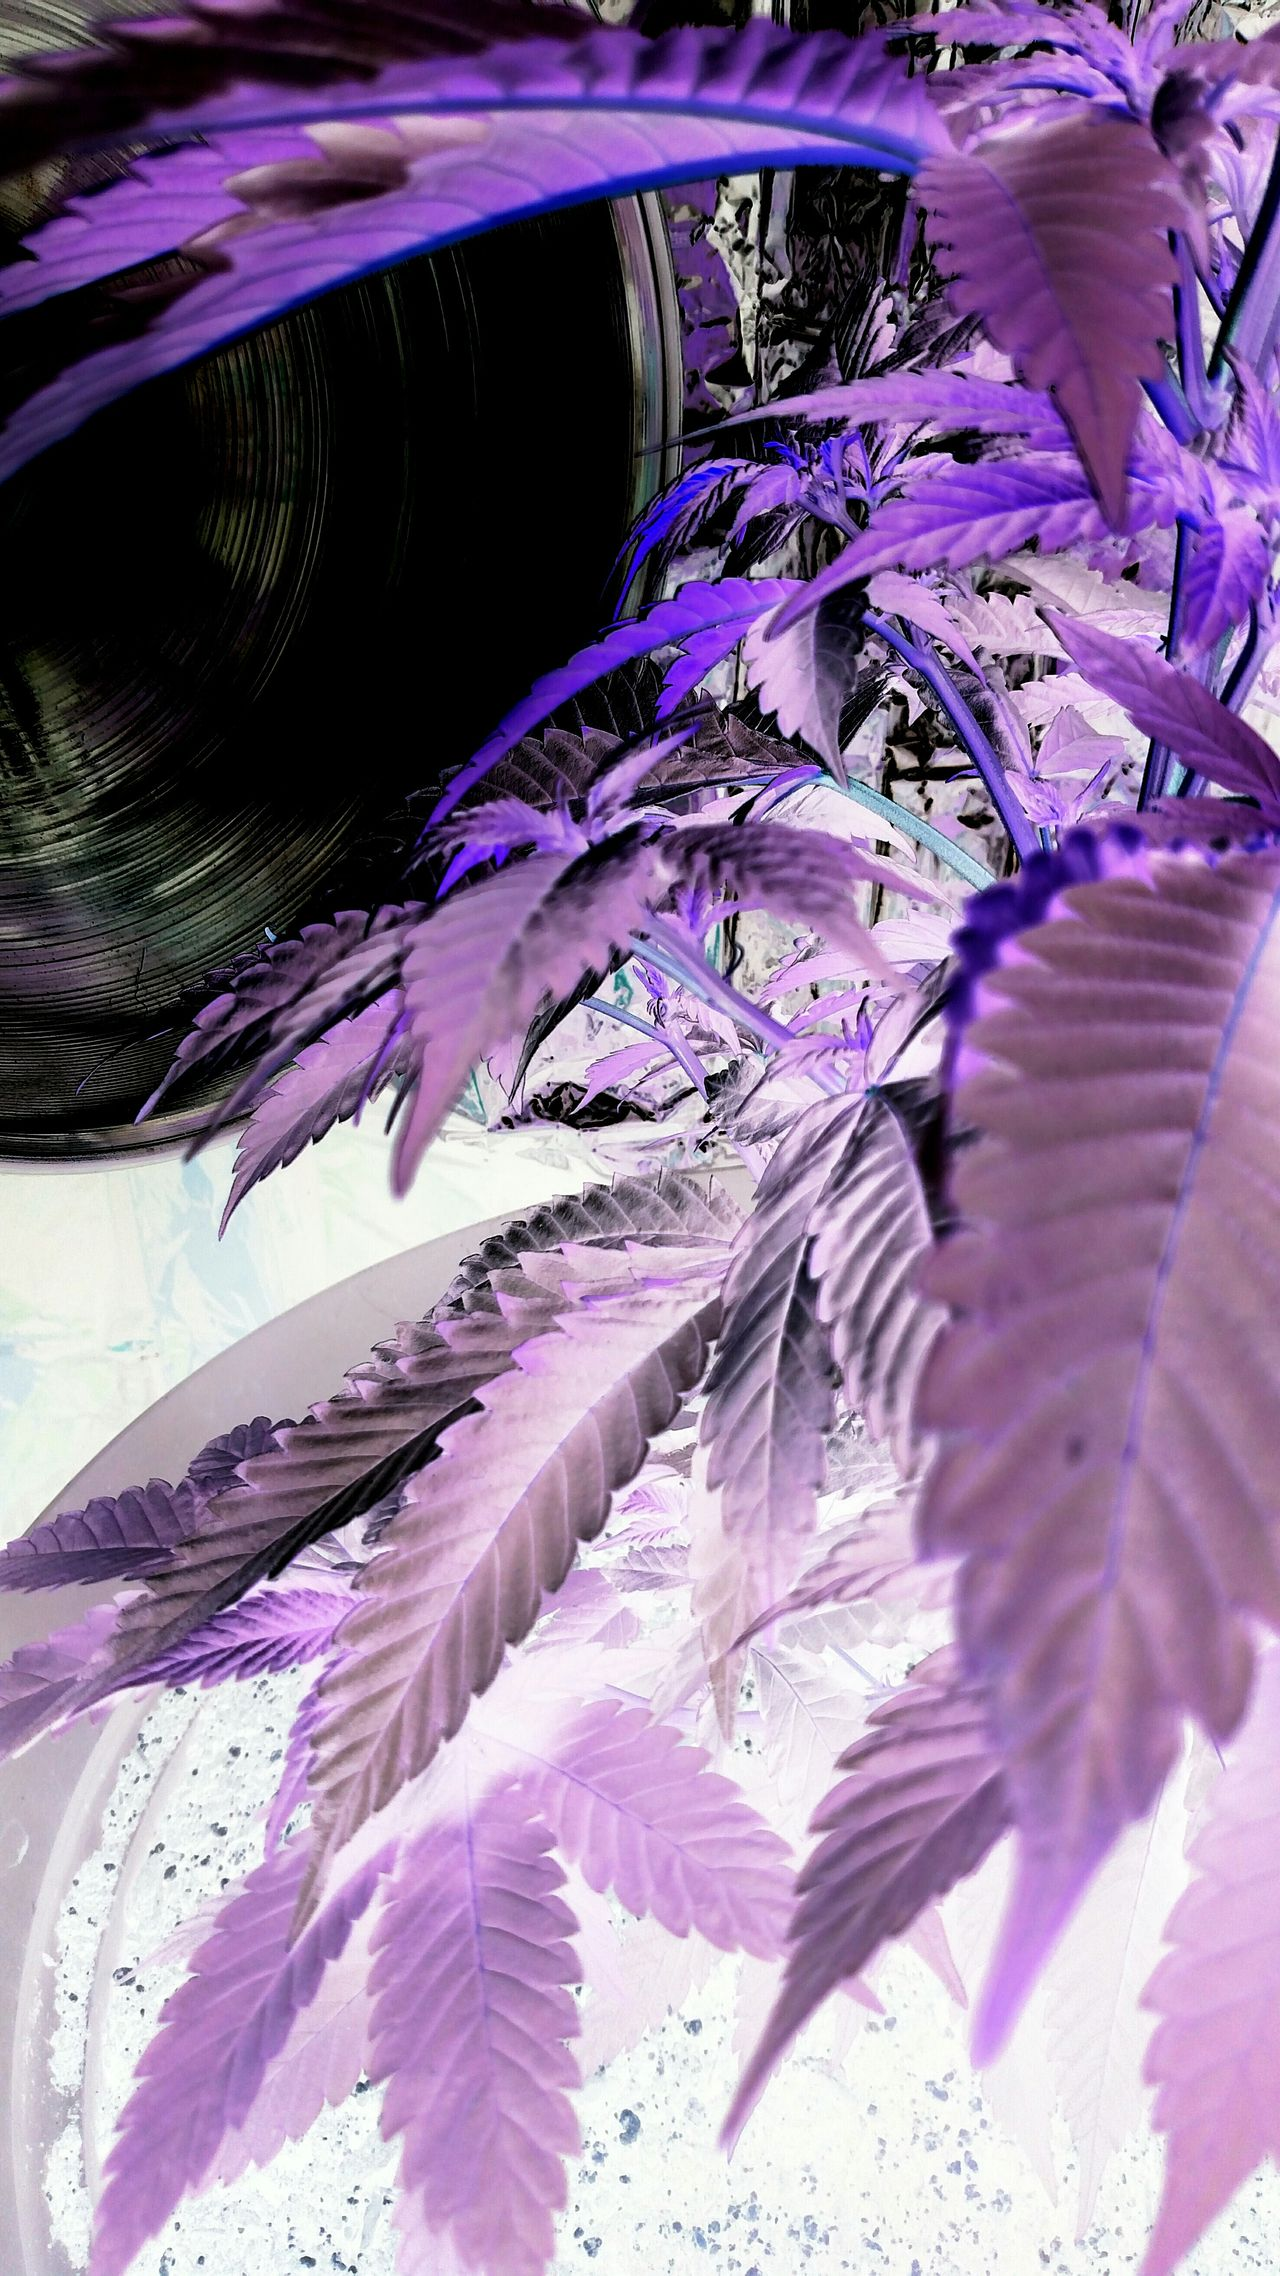 Negative Effect Marijuana Indoor Gardening Purple Flowers Feminine